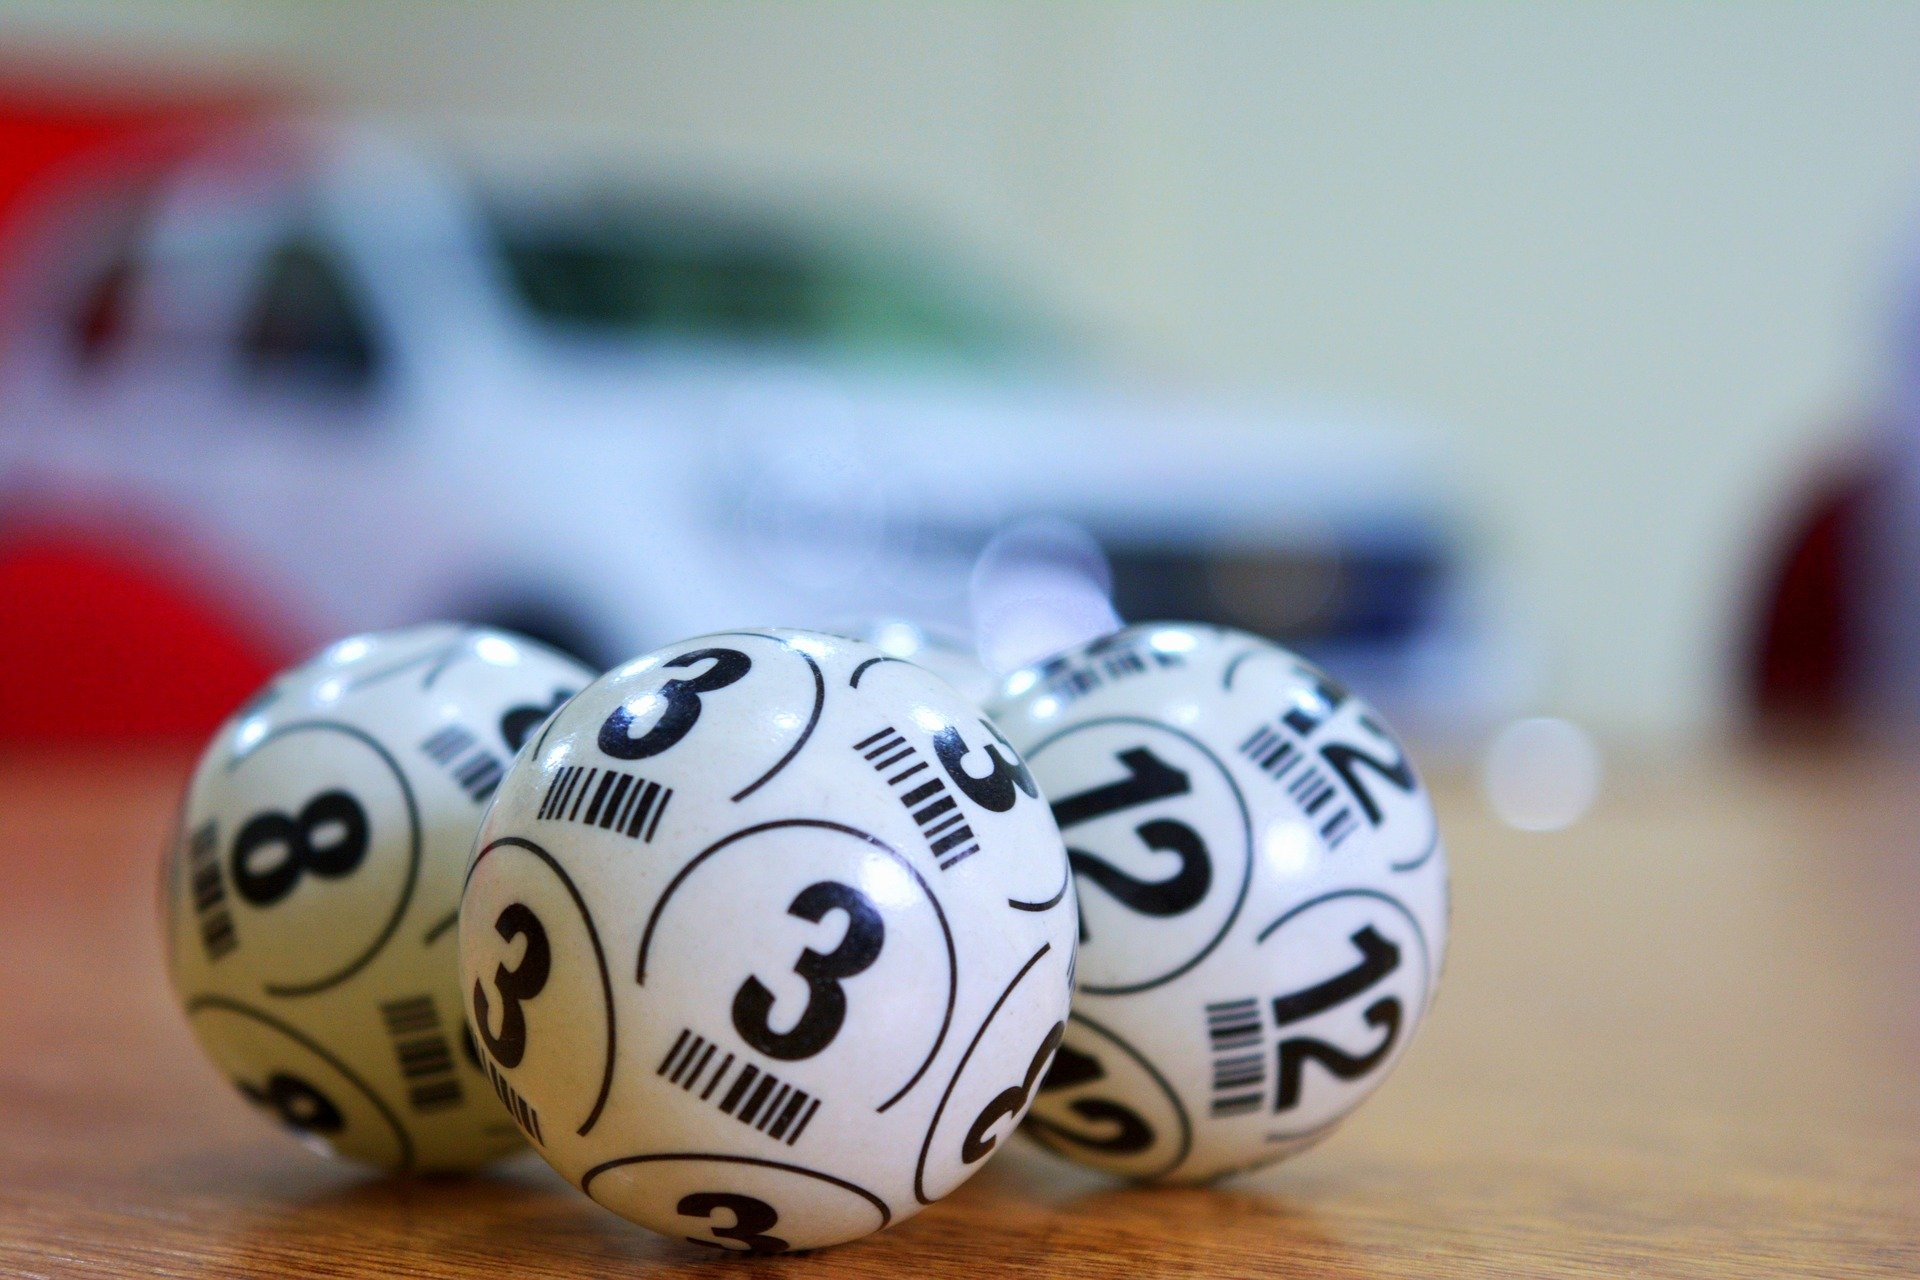 Three lottery balls with different numbers on them | Photo:Pixabay/Alejandro Garay